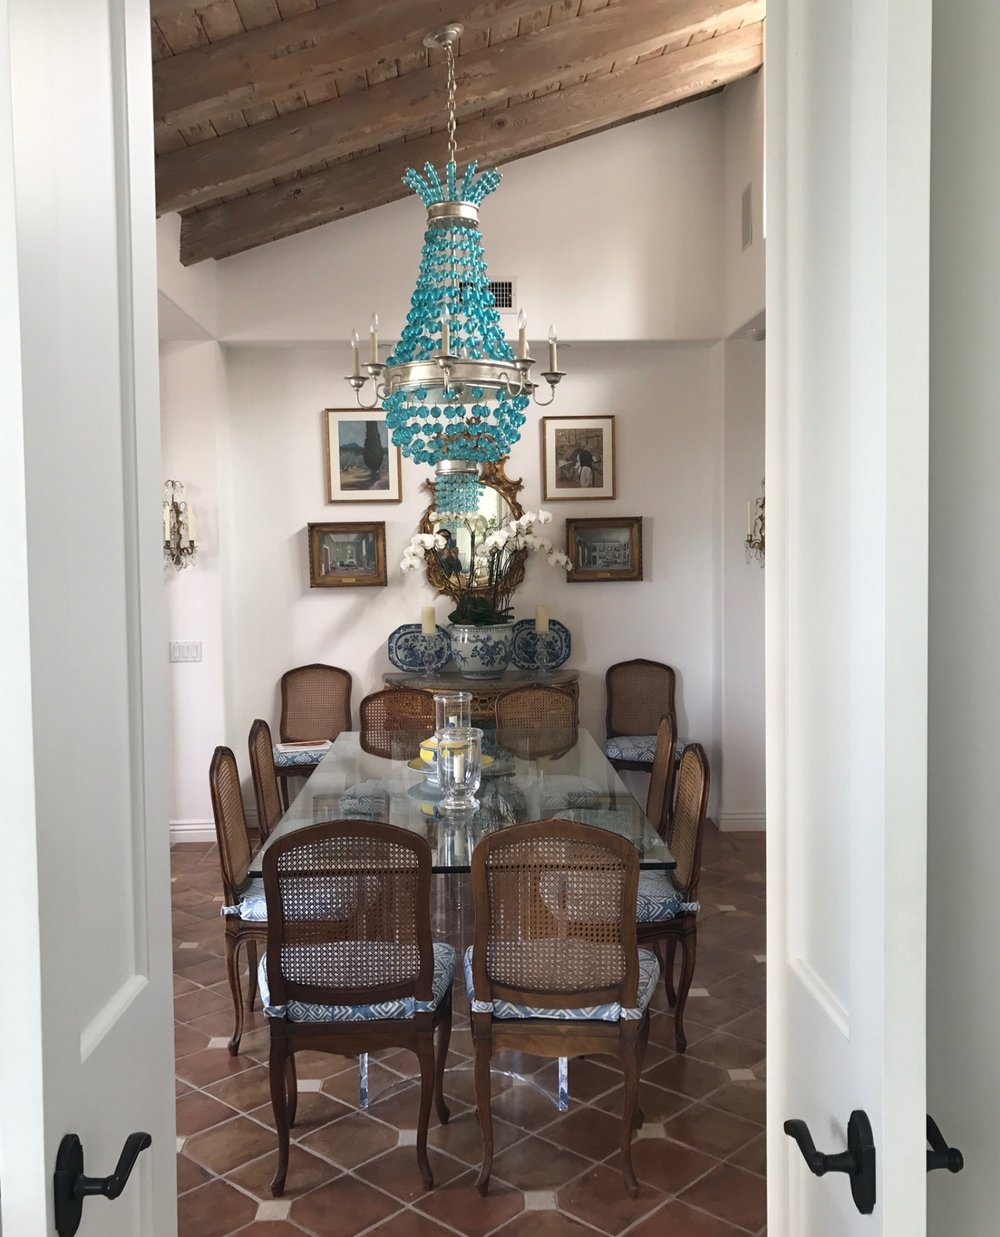 Laguna beach dining room of home designer Ginny Magher, tiled floors, wood ceiling, French design.